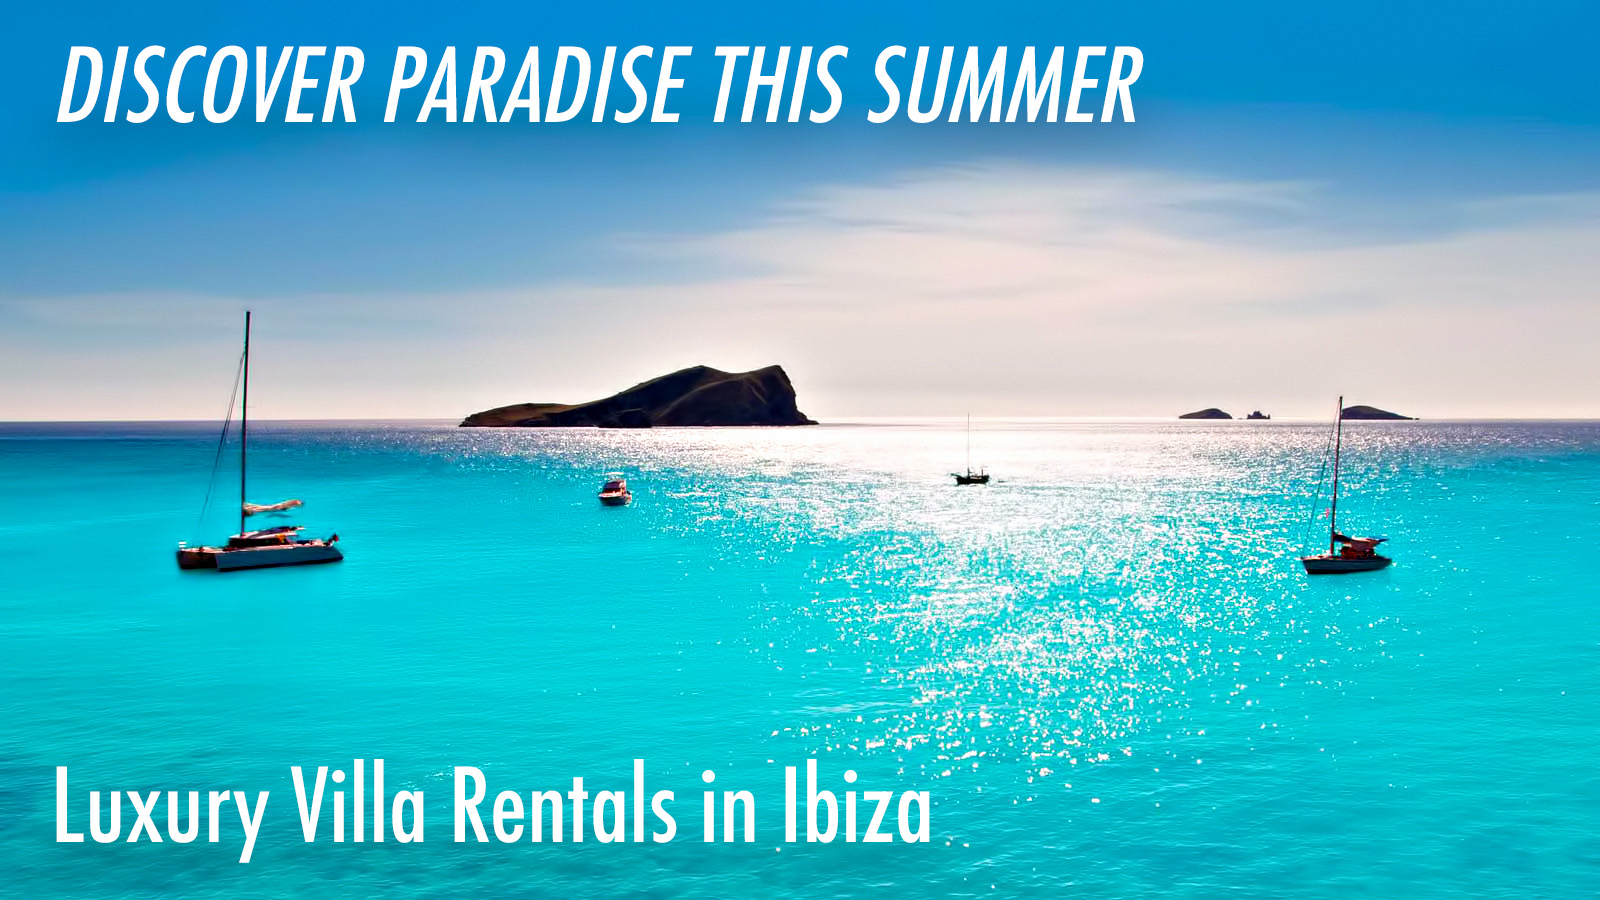 Discover Paradise this Summer - Luxury Villa Rentals in Ibiza